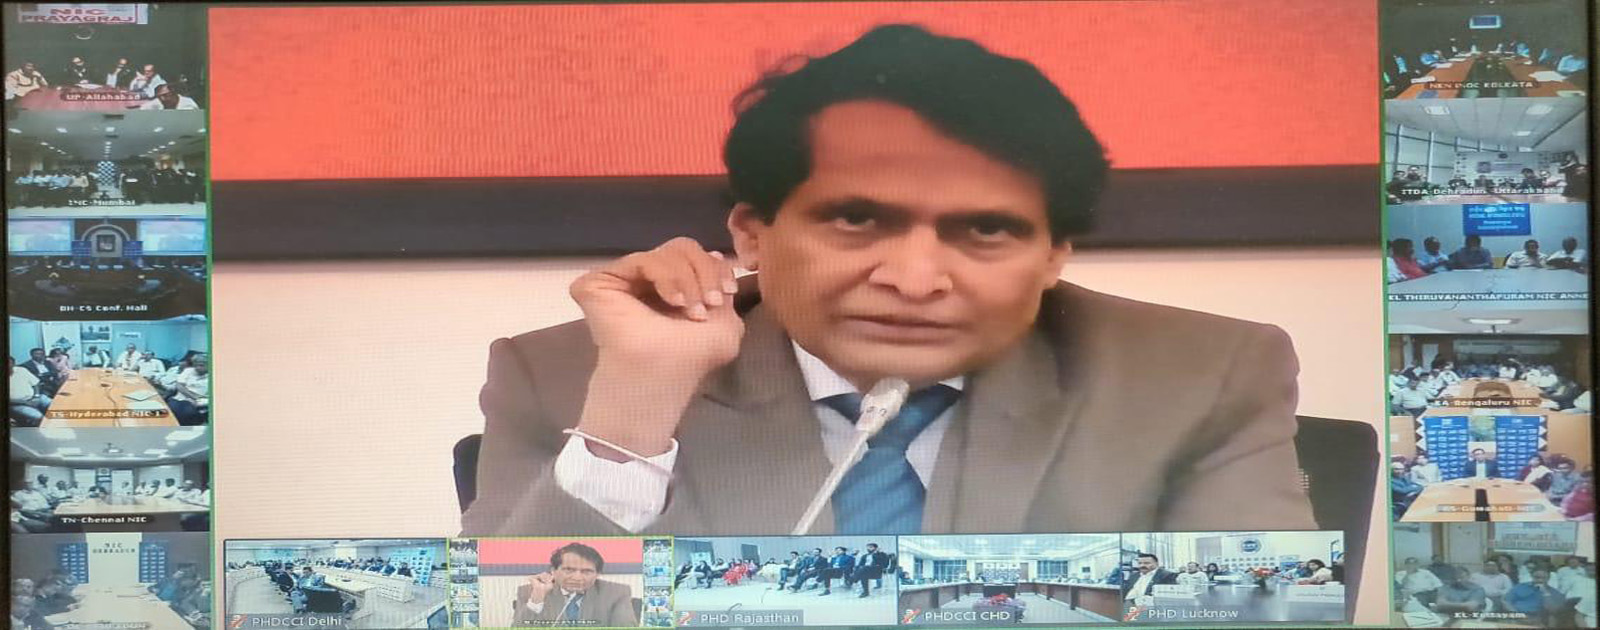 Video Conferencing with Union Minister for Commerce & Industry and Civil Aviation, Dr Suresh Prabhu